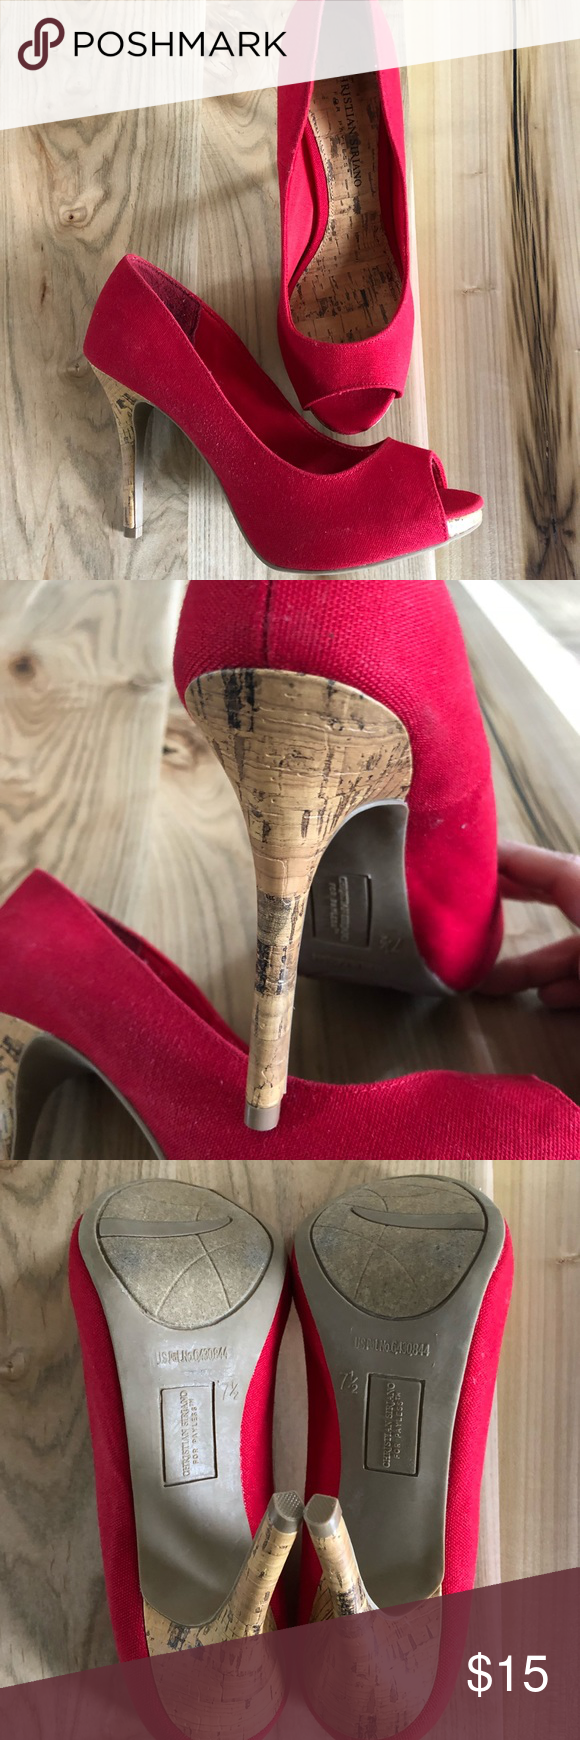 Christian Siriano Shoes Red